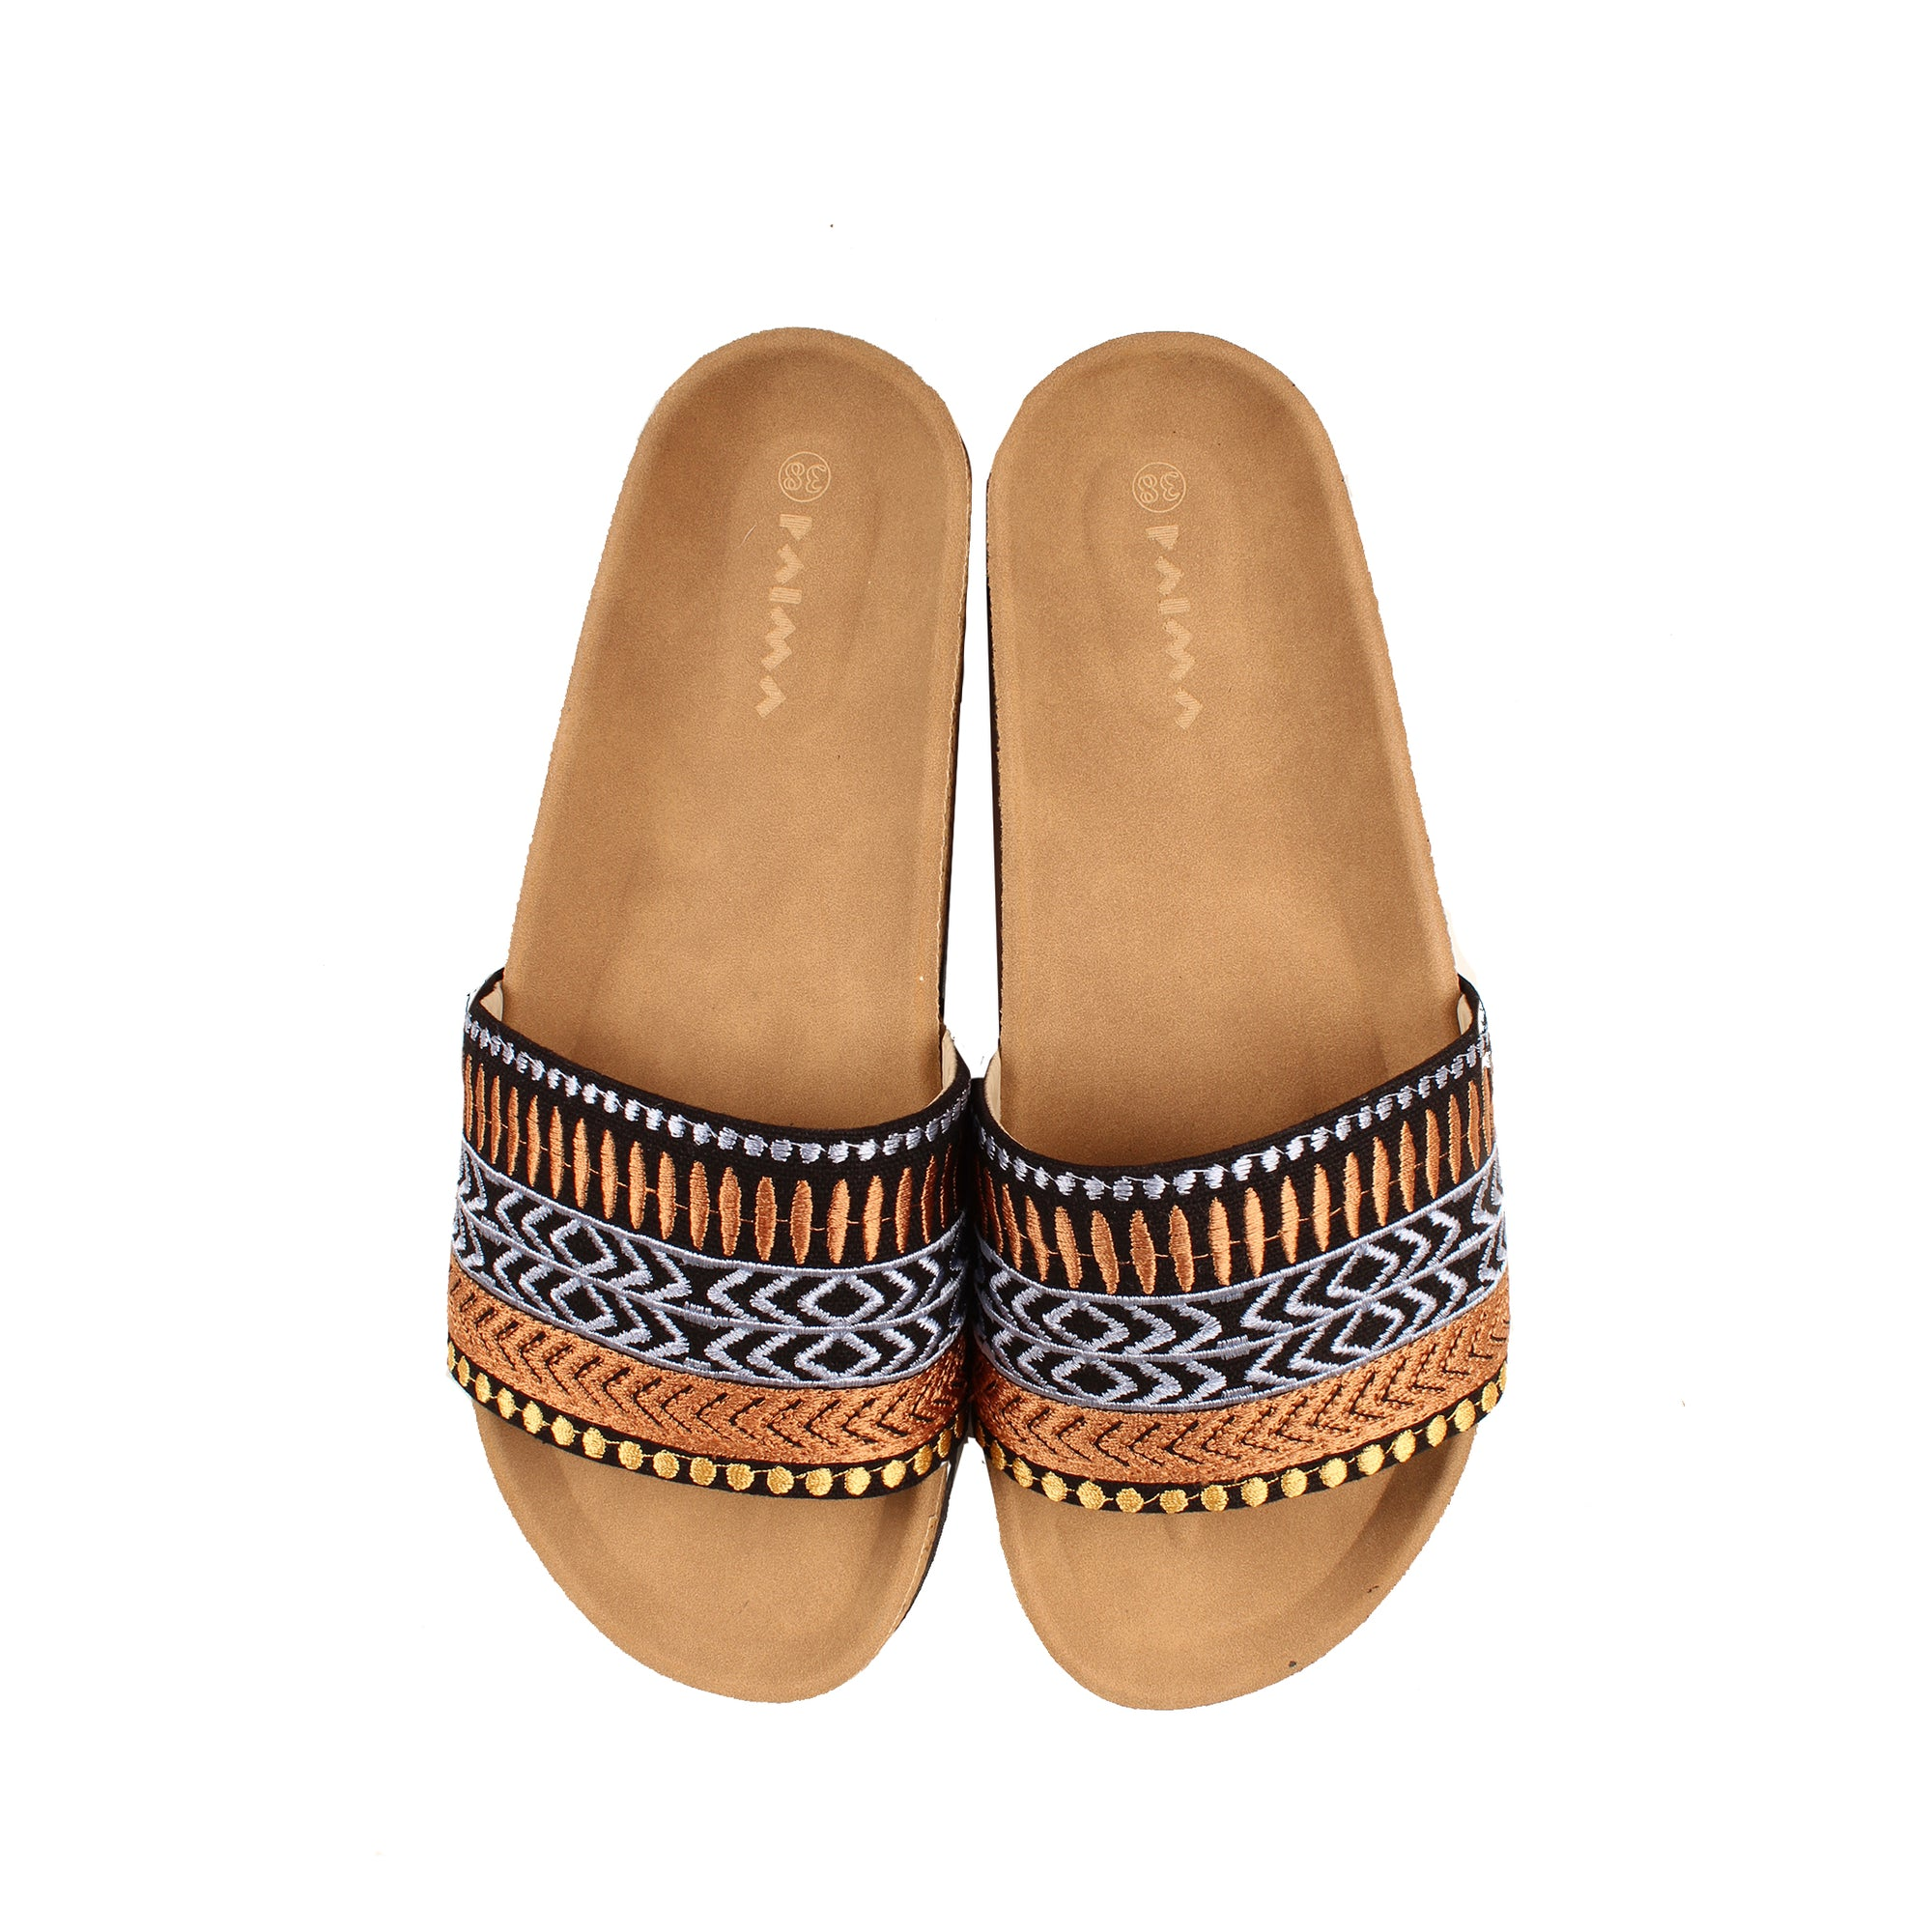 Geometric Boho Slides Black